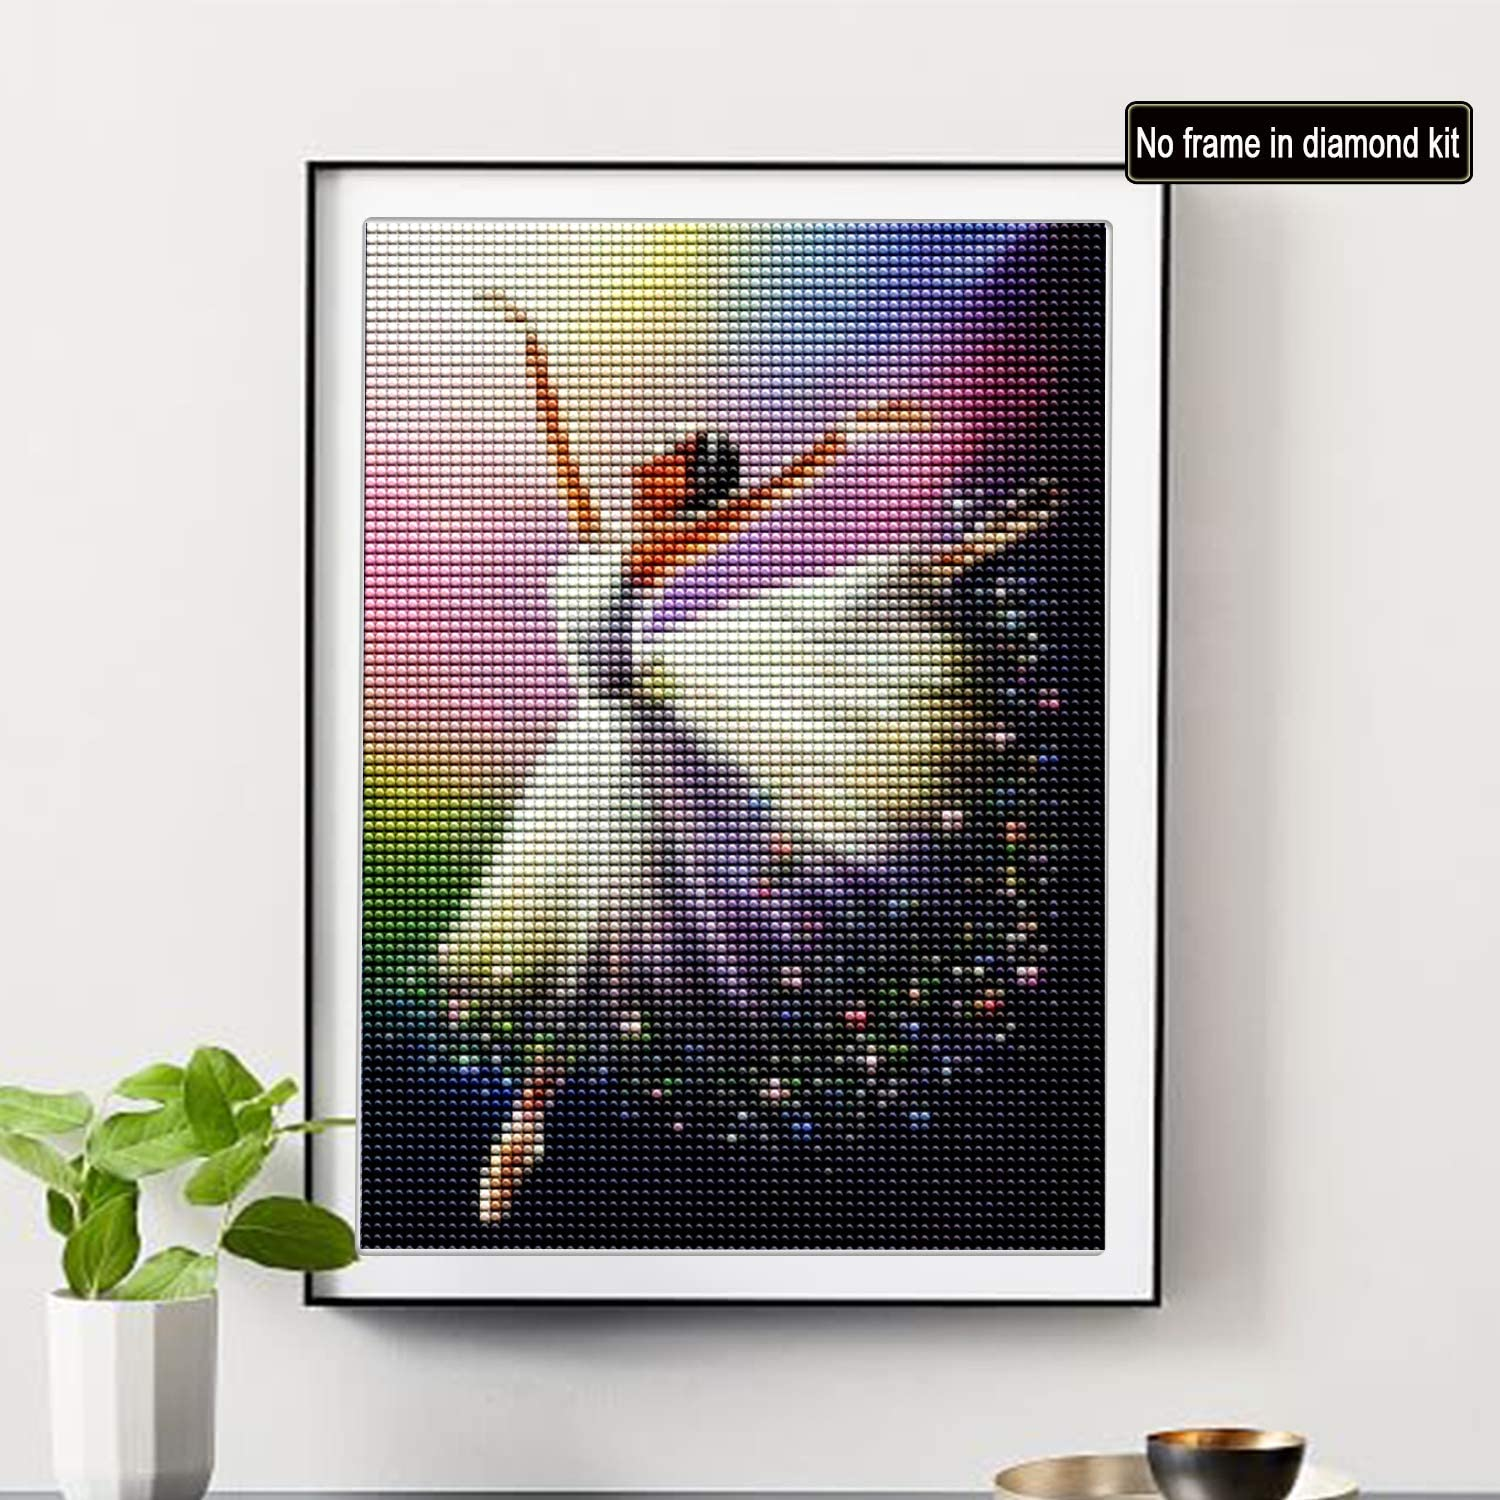 SKRYUIE DIY Rhinestone Pasted Paint with Diamond Set Arts Craft Decorations 5D Diamond Painting Dancer Full Drill by Number Kits 12x16inch